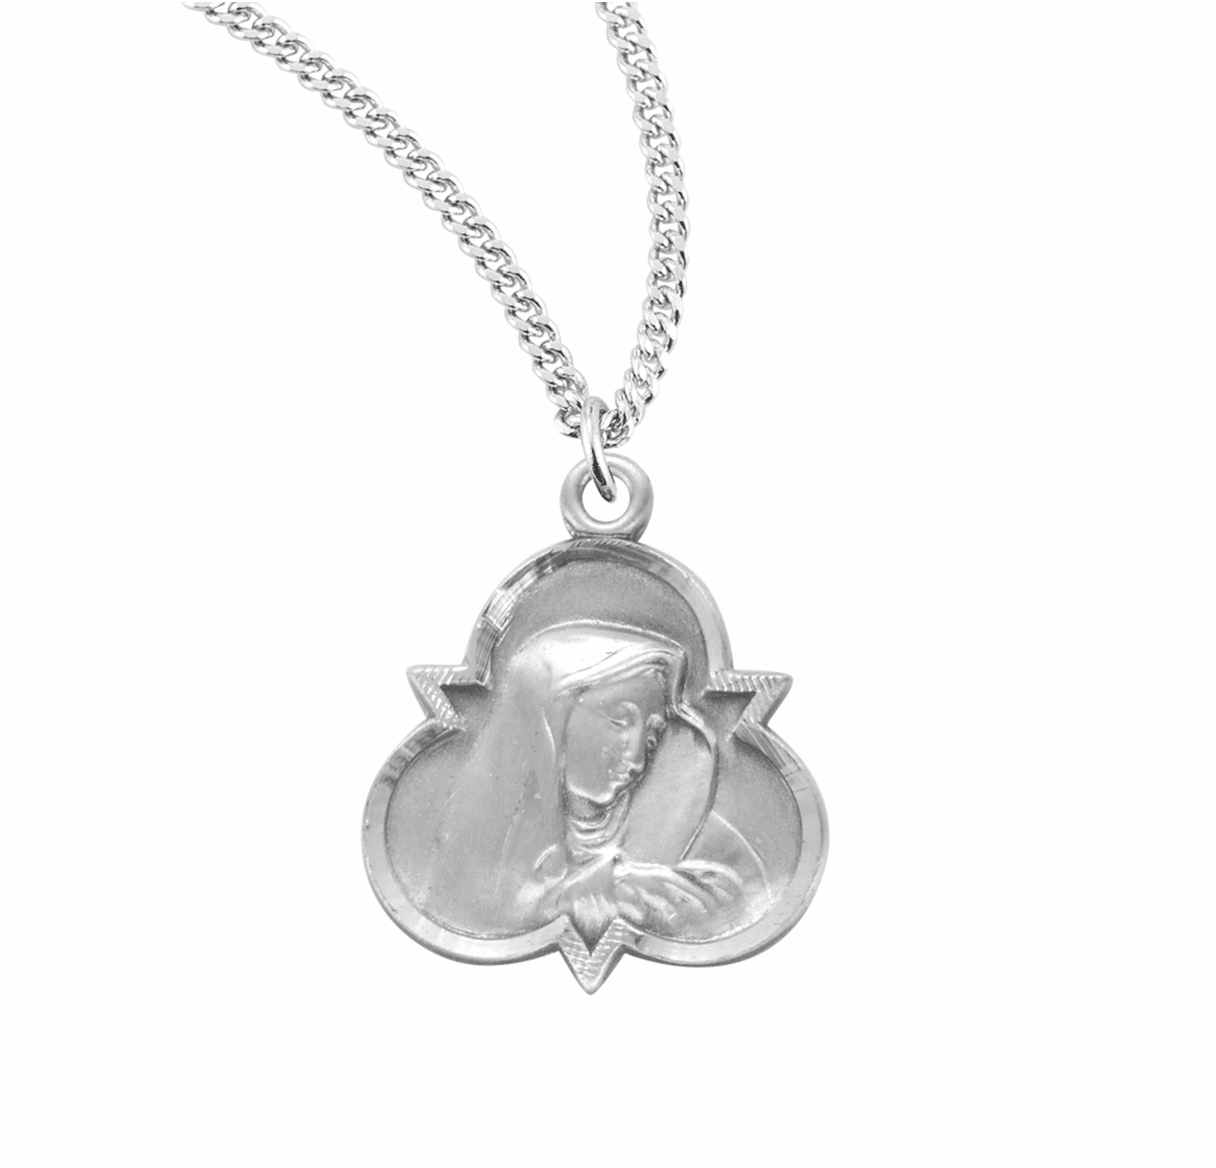 HMH Religious Trinity Sterling Silver Our Lady of Sorrows Necklace